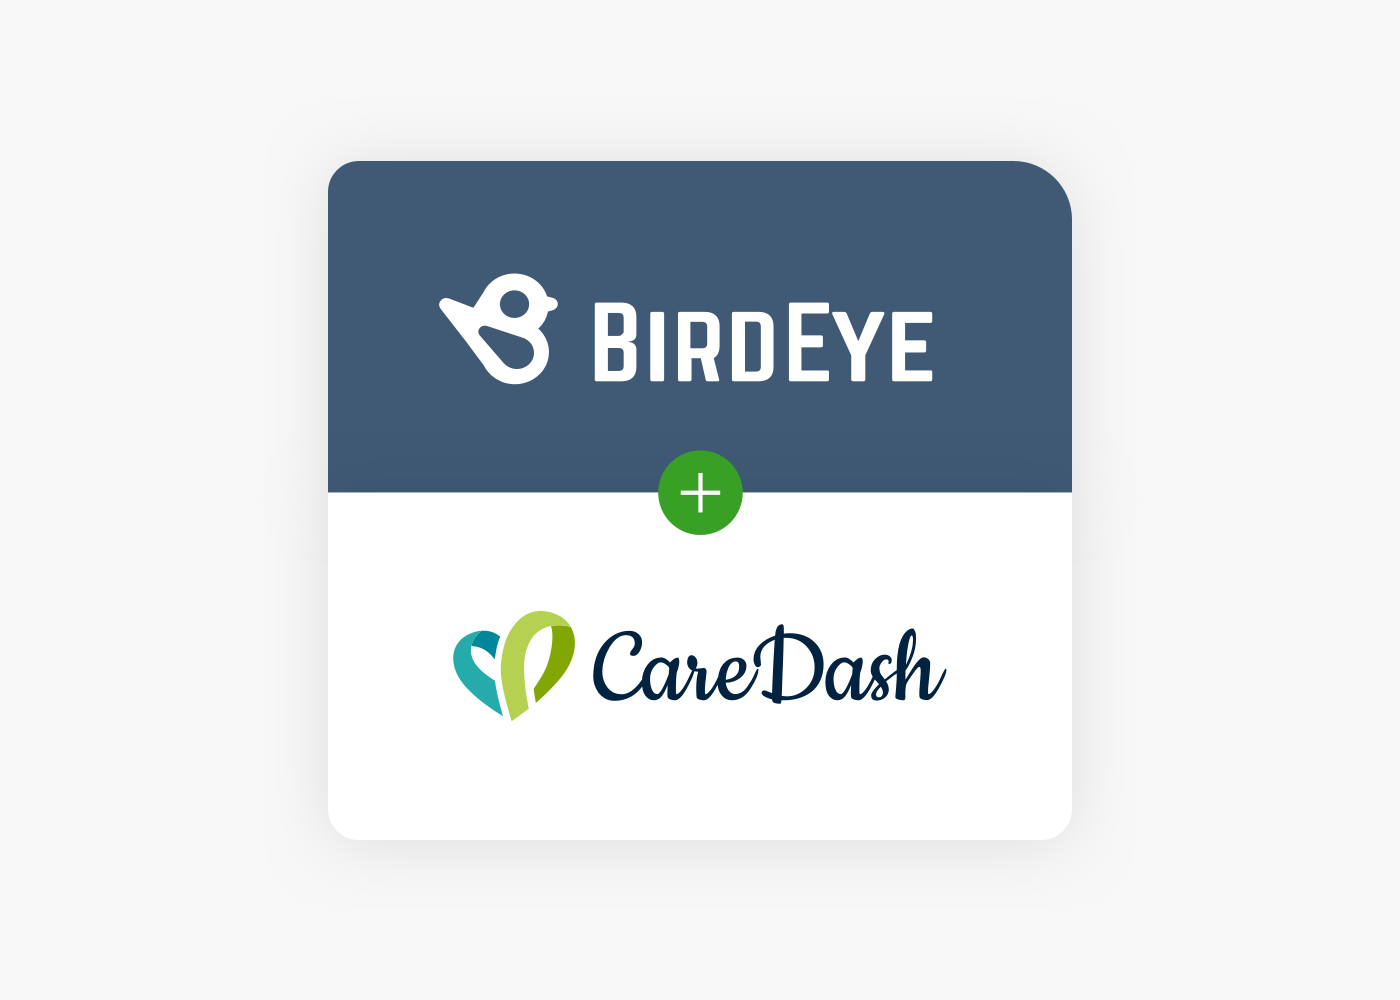 Caredash Partners With Birdeye To Enable Healthcare Practices To Be More Responsive To Patients 1556200750518